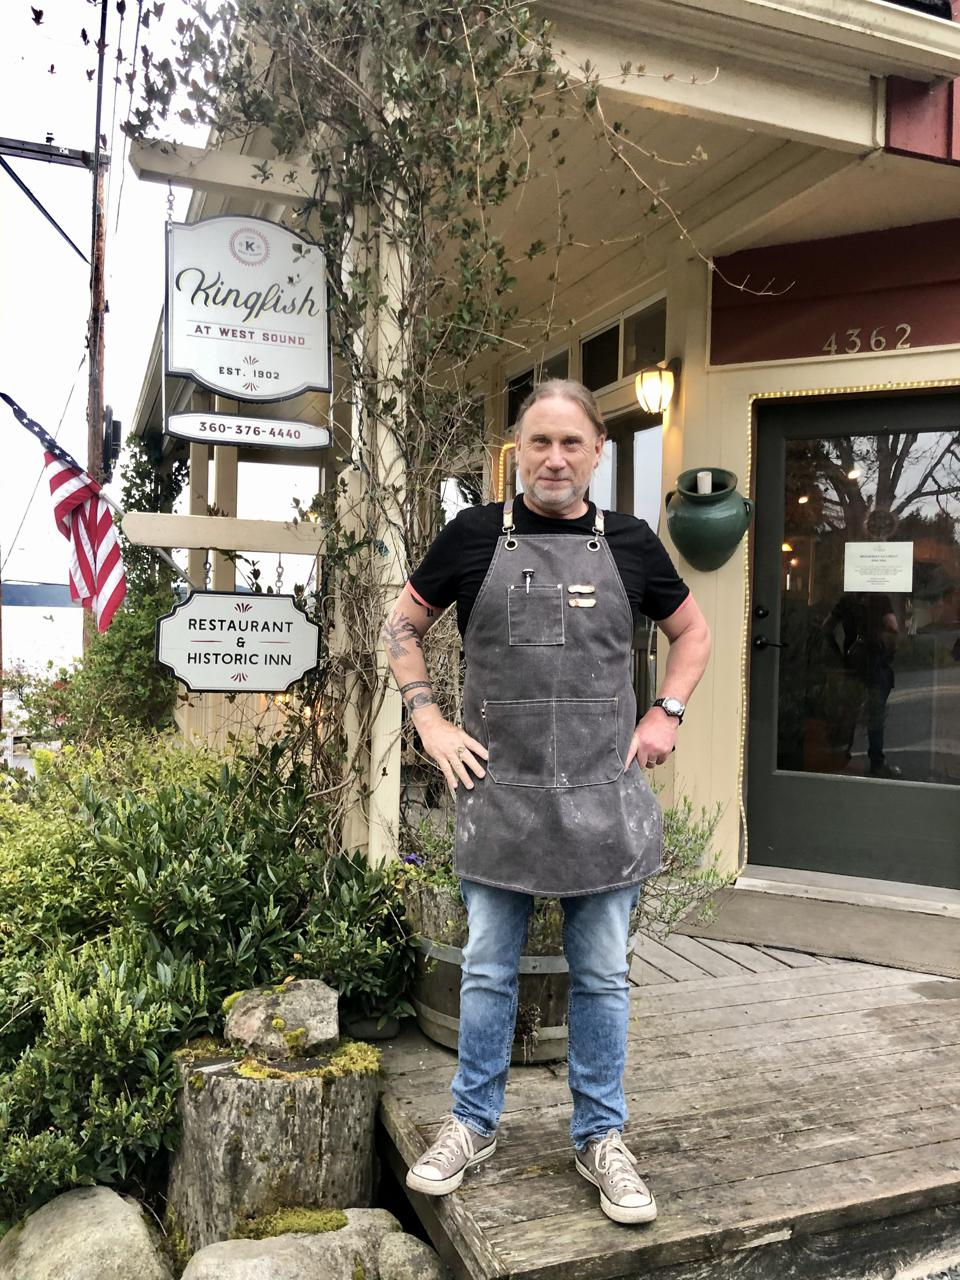 Raymond Southern is a Canadian chef working on Orcas Island in Washington State.